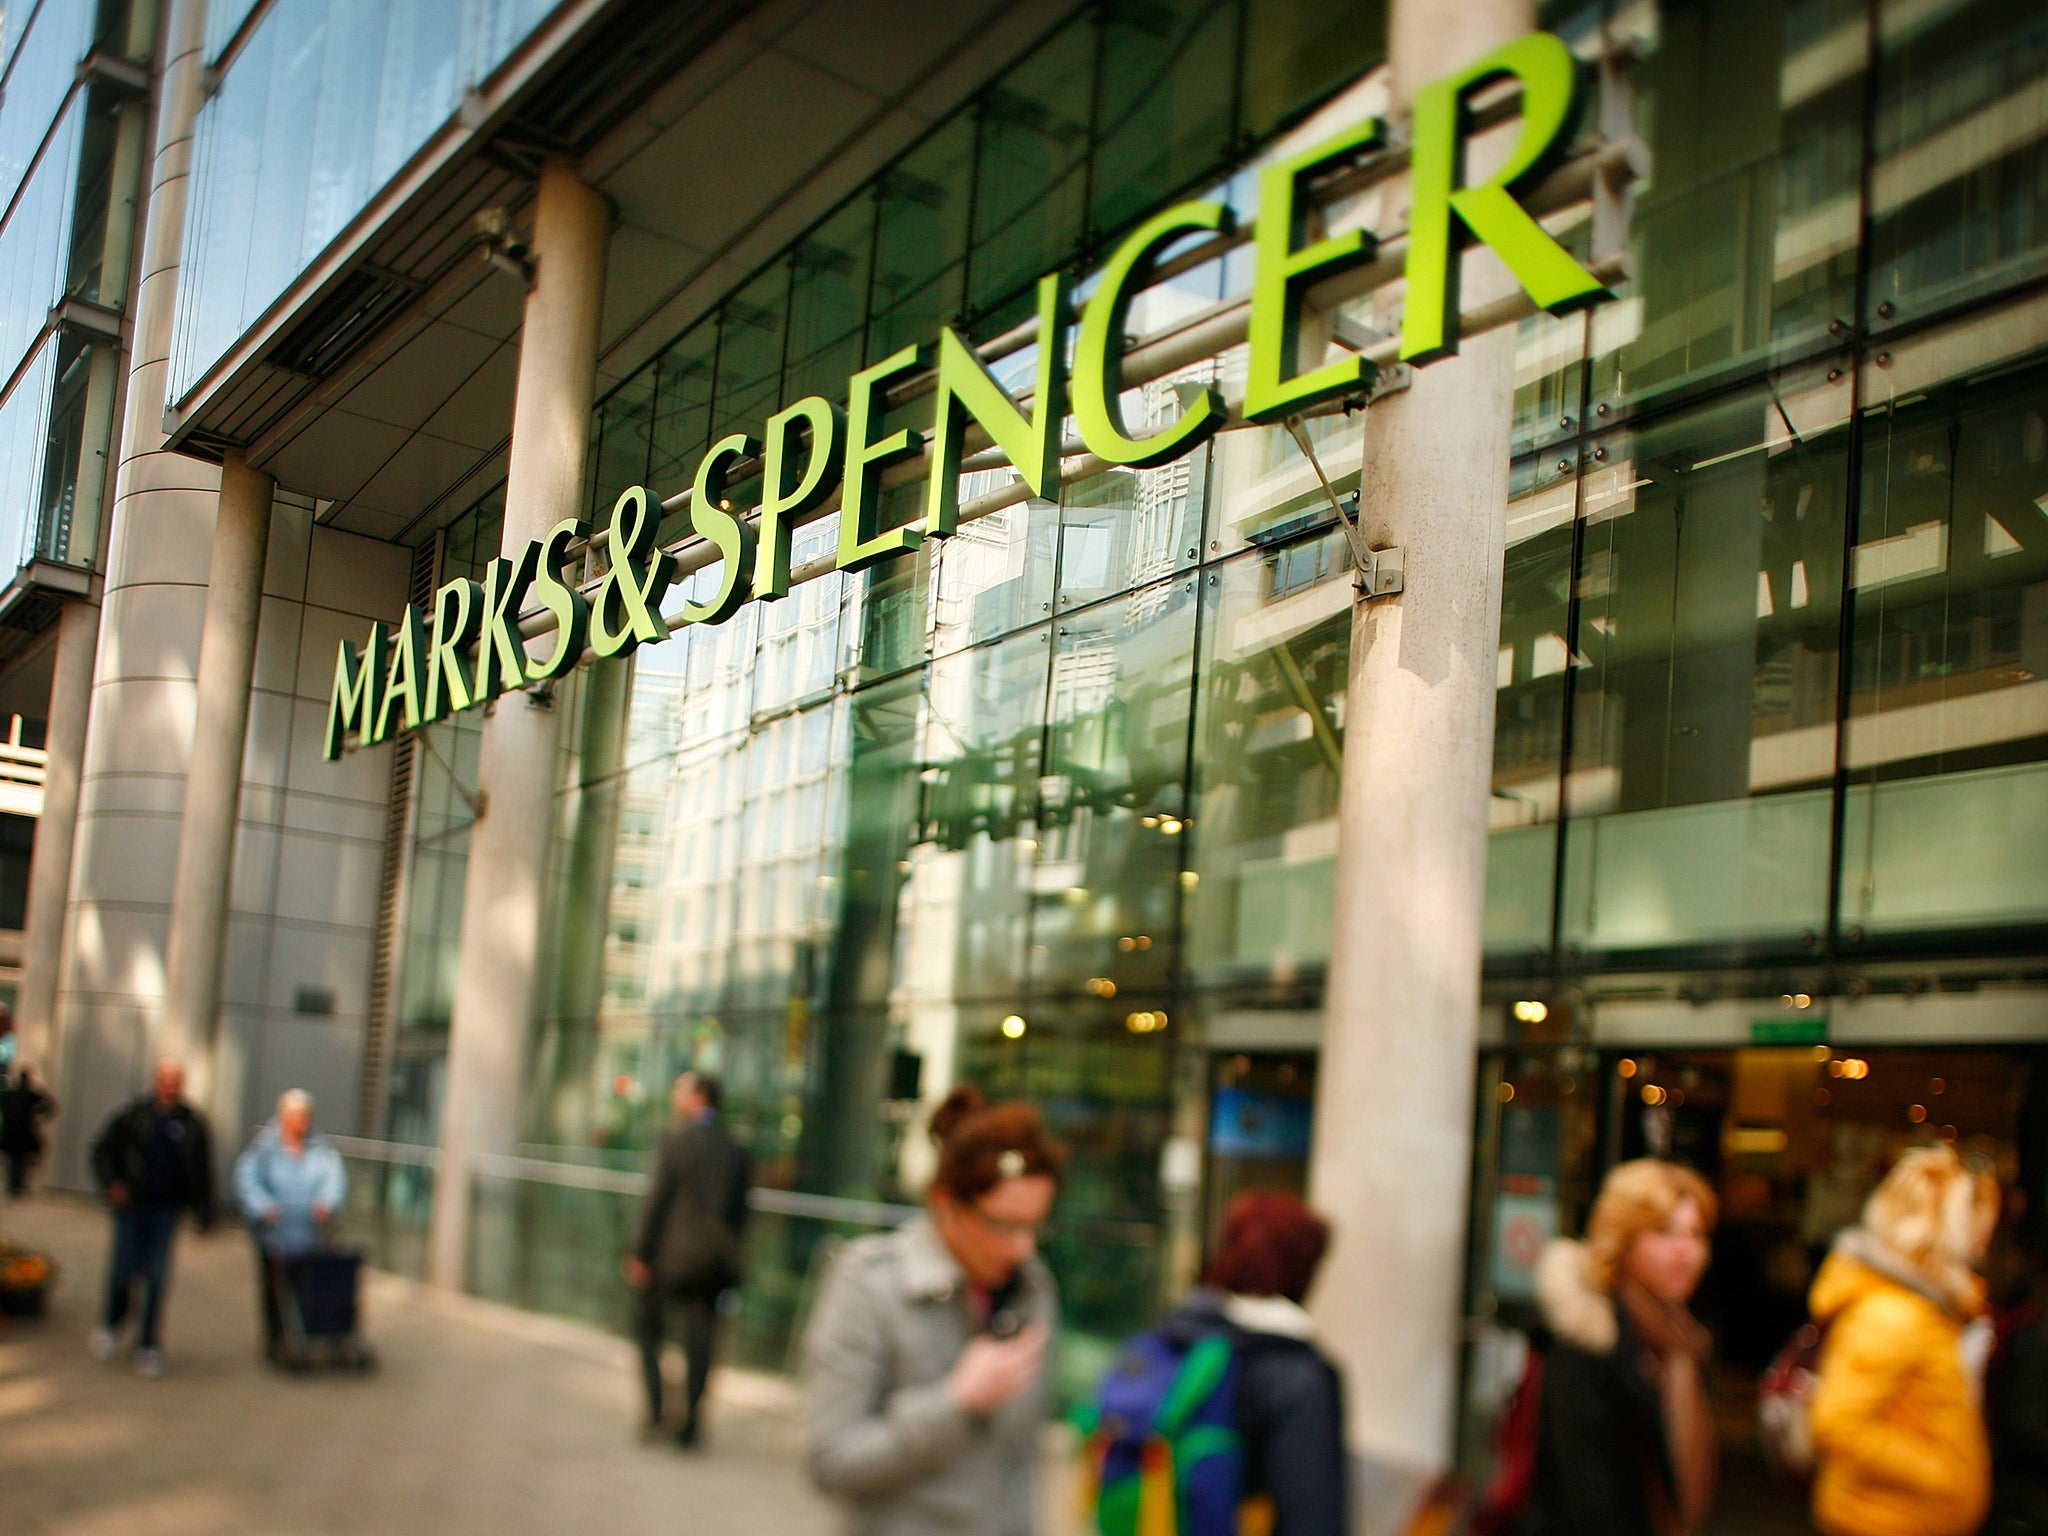 marks and spencer - photo #11